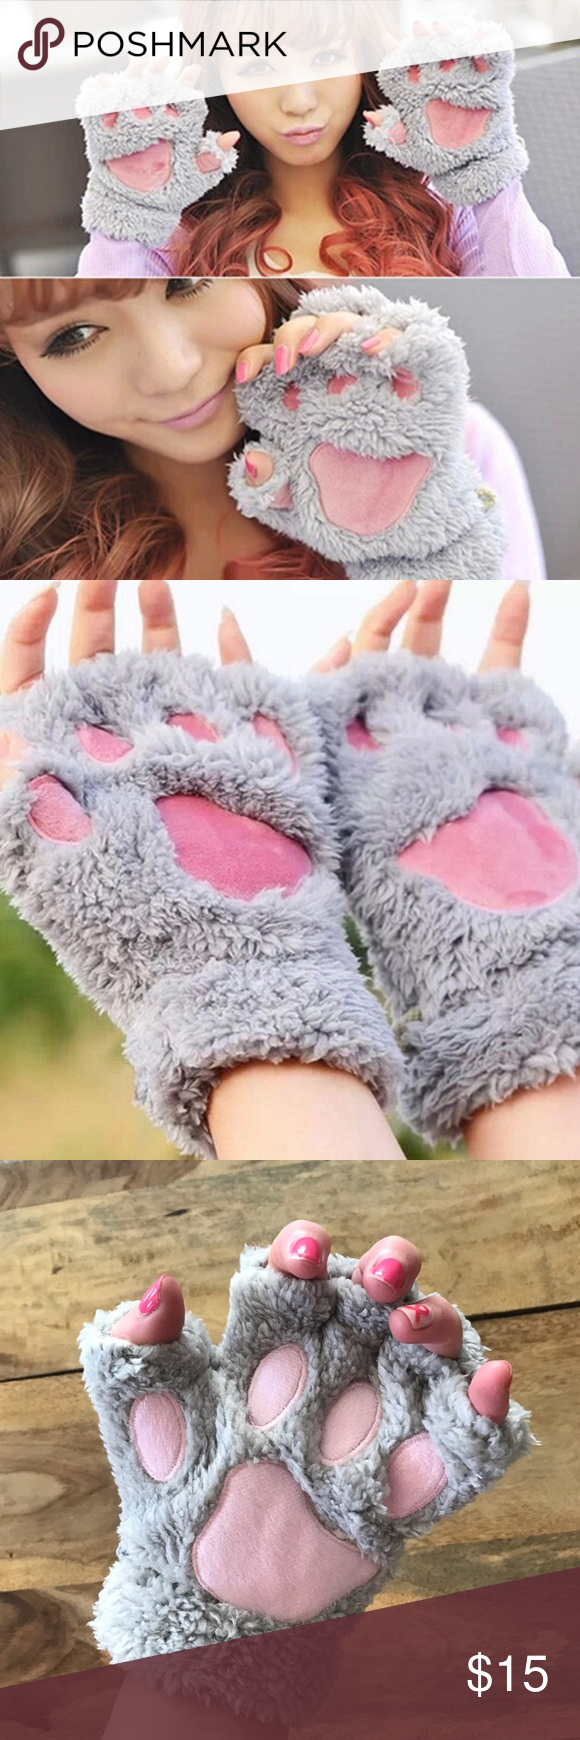 Cute animal paw fingerless gloves One size Accessories Gloves & Mittens